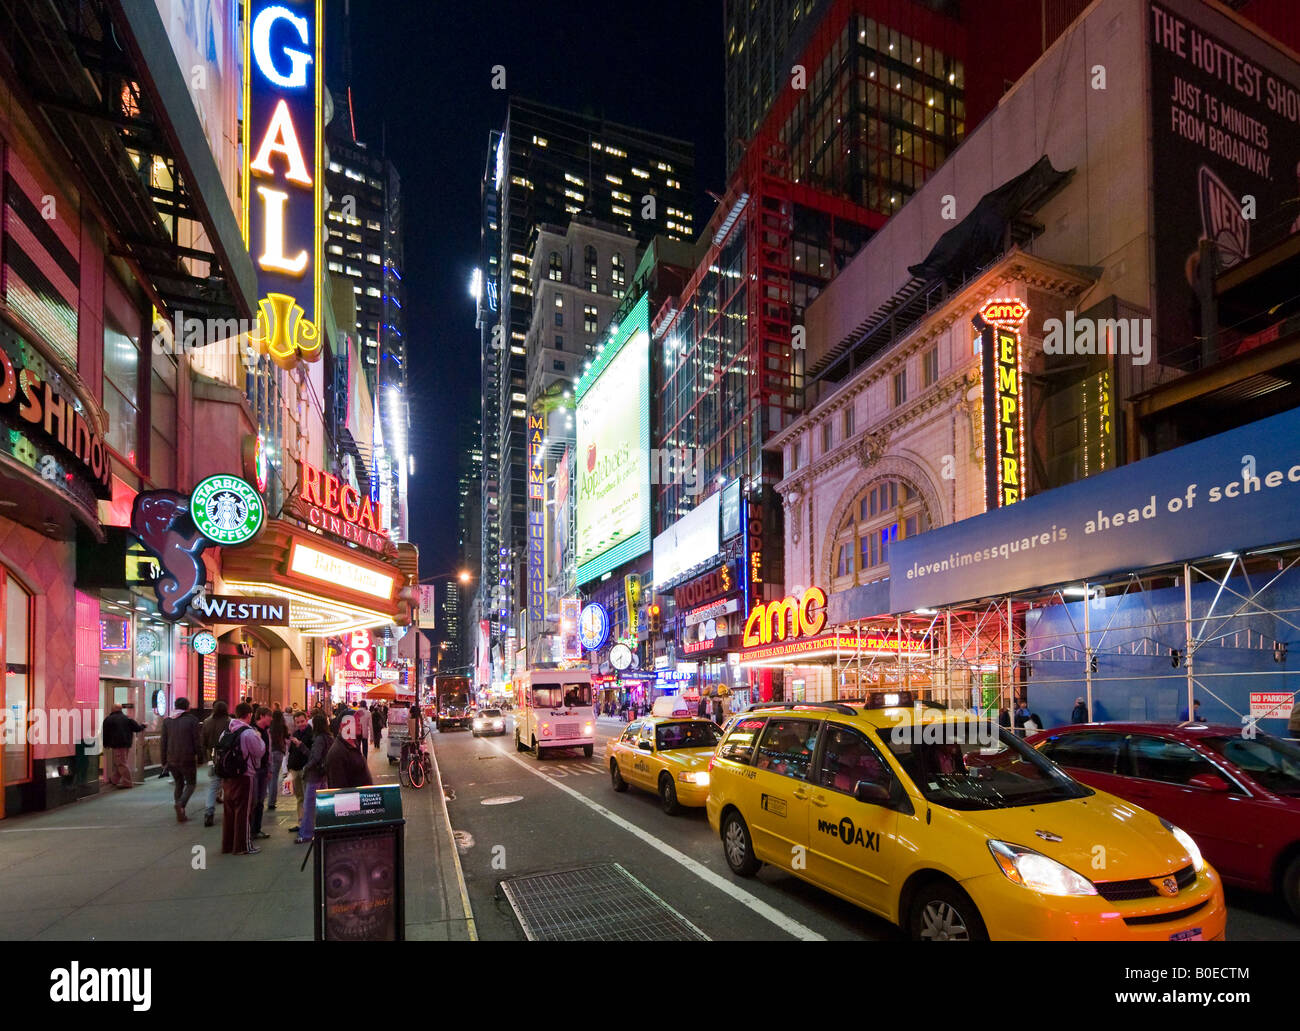 Yellow Taxi Cabs on West 42nd Street at Times Square, Manhattan, New York City - Stock Image